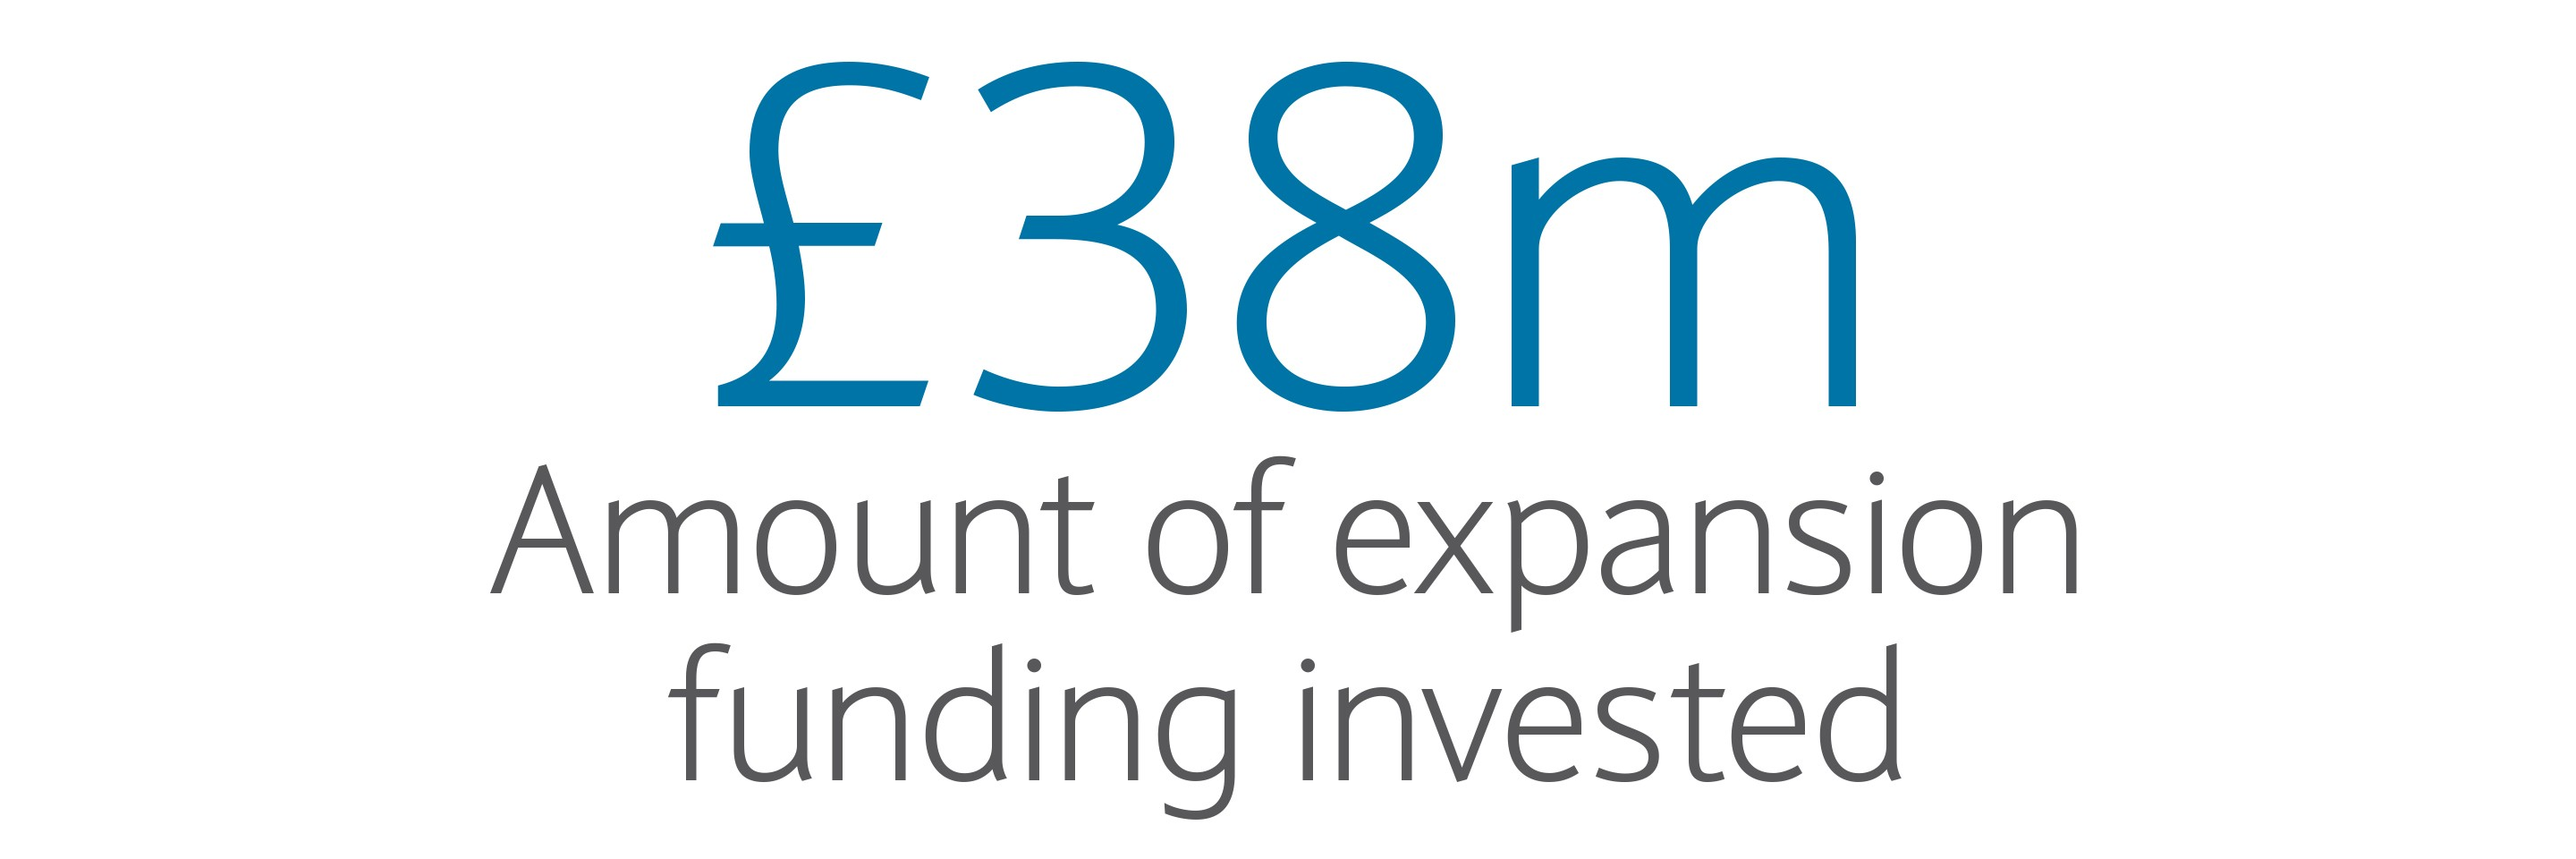 £38m: Amount of expansion funding invested